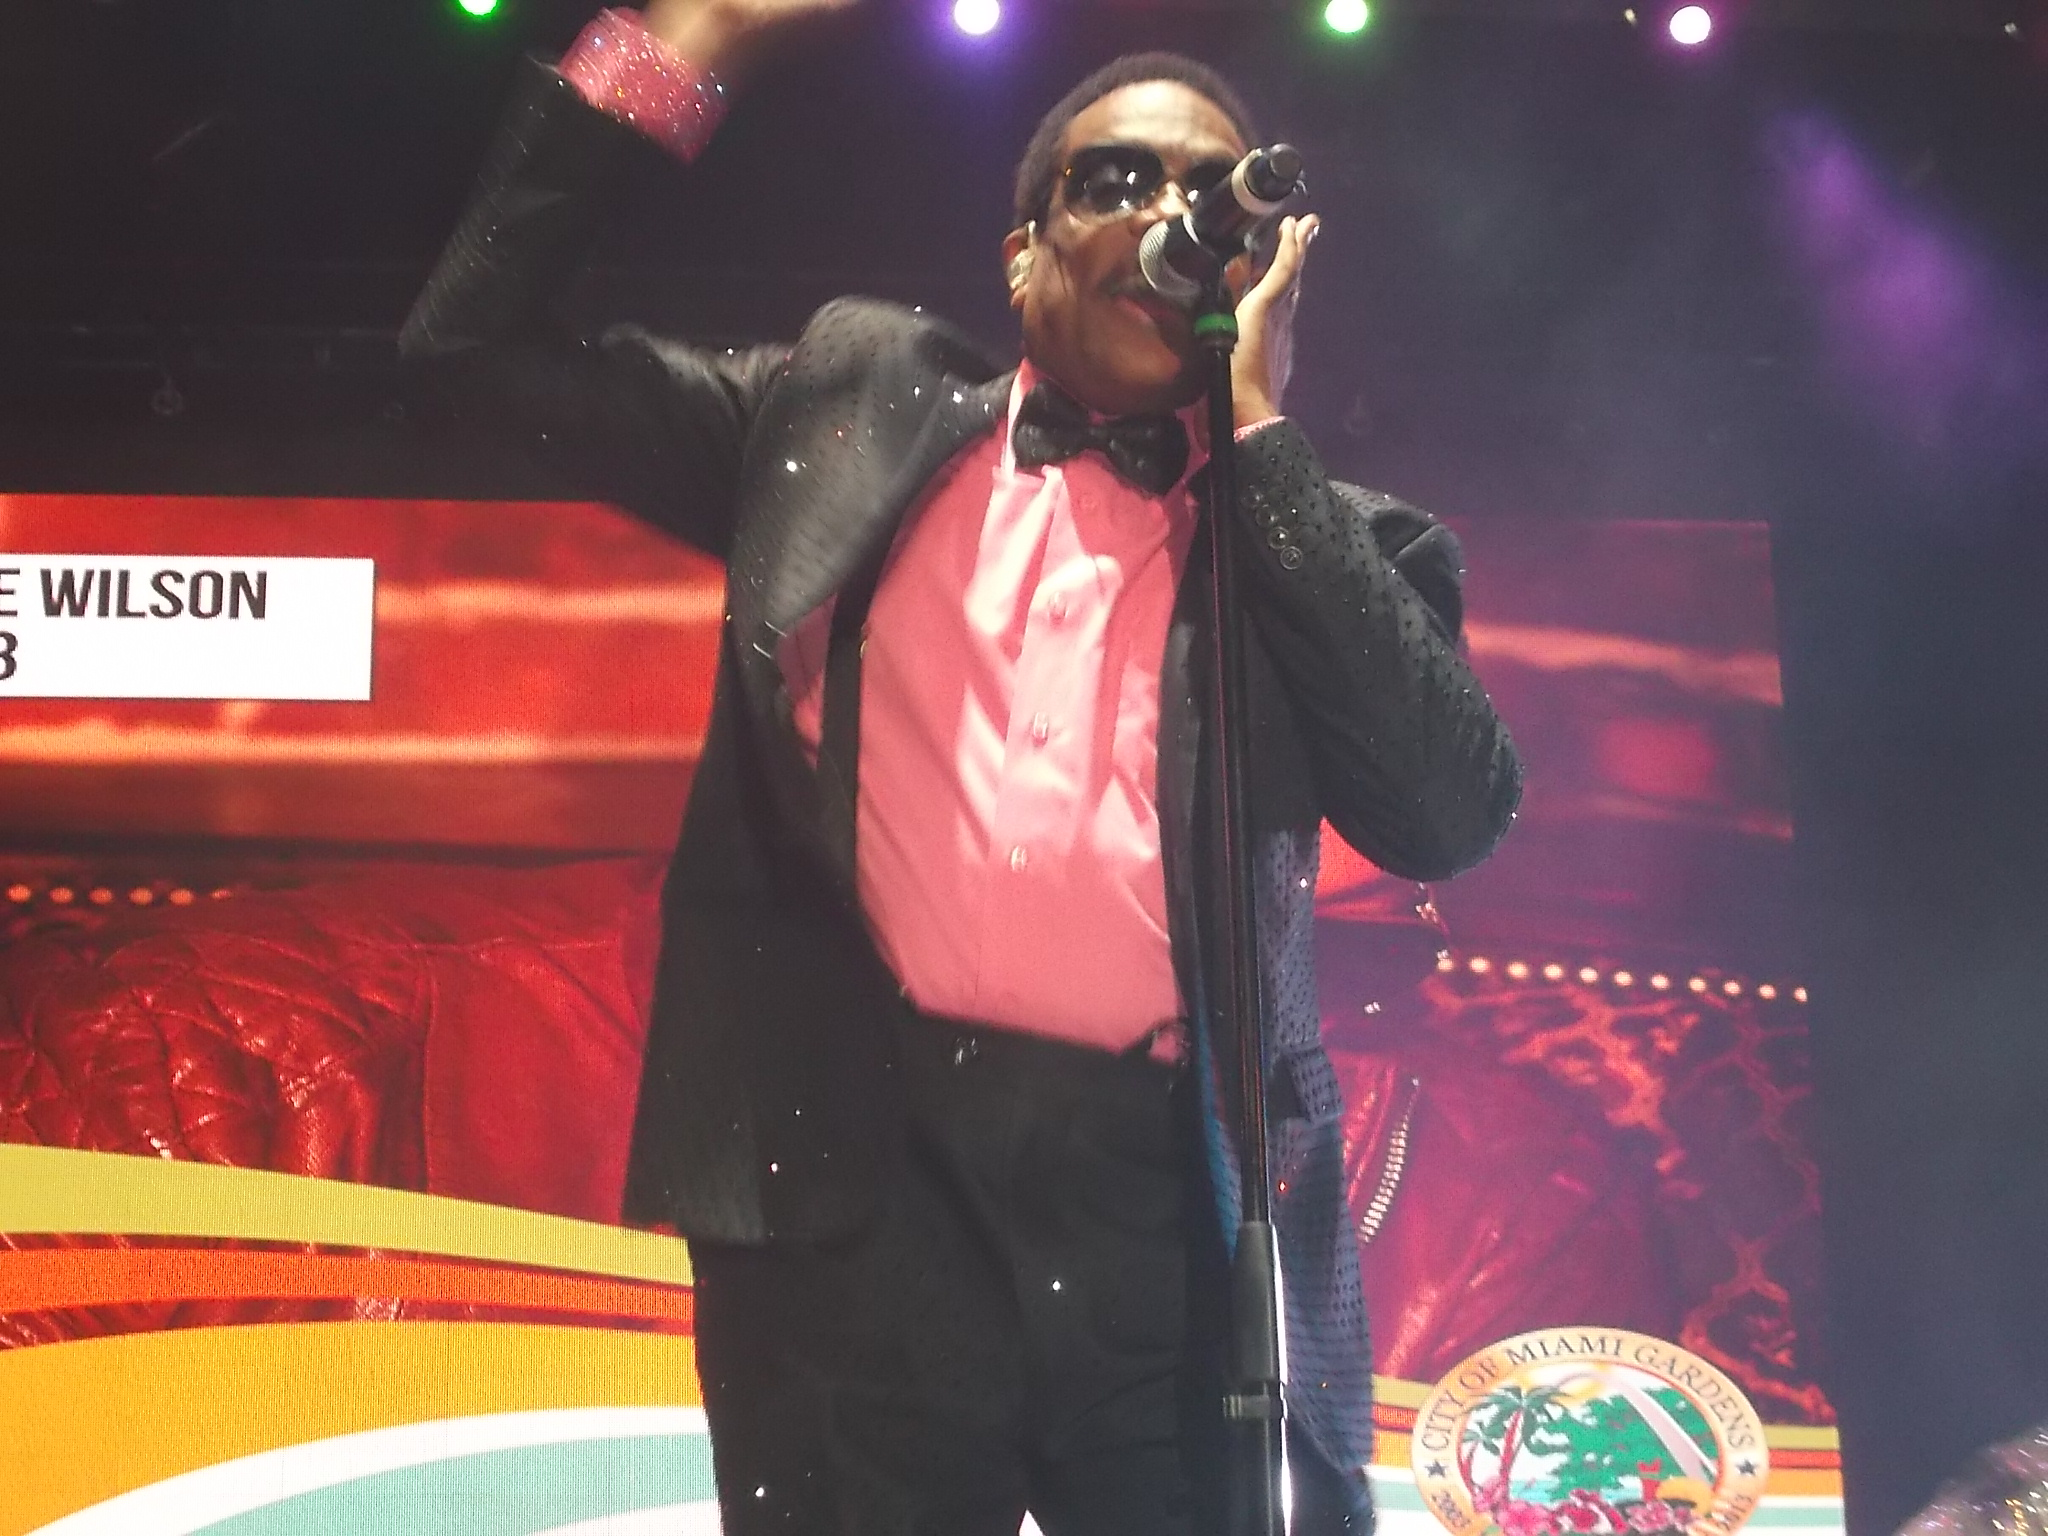 Charlie Wilson Performs at Jazz in the Gardens